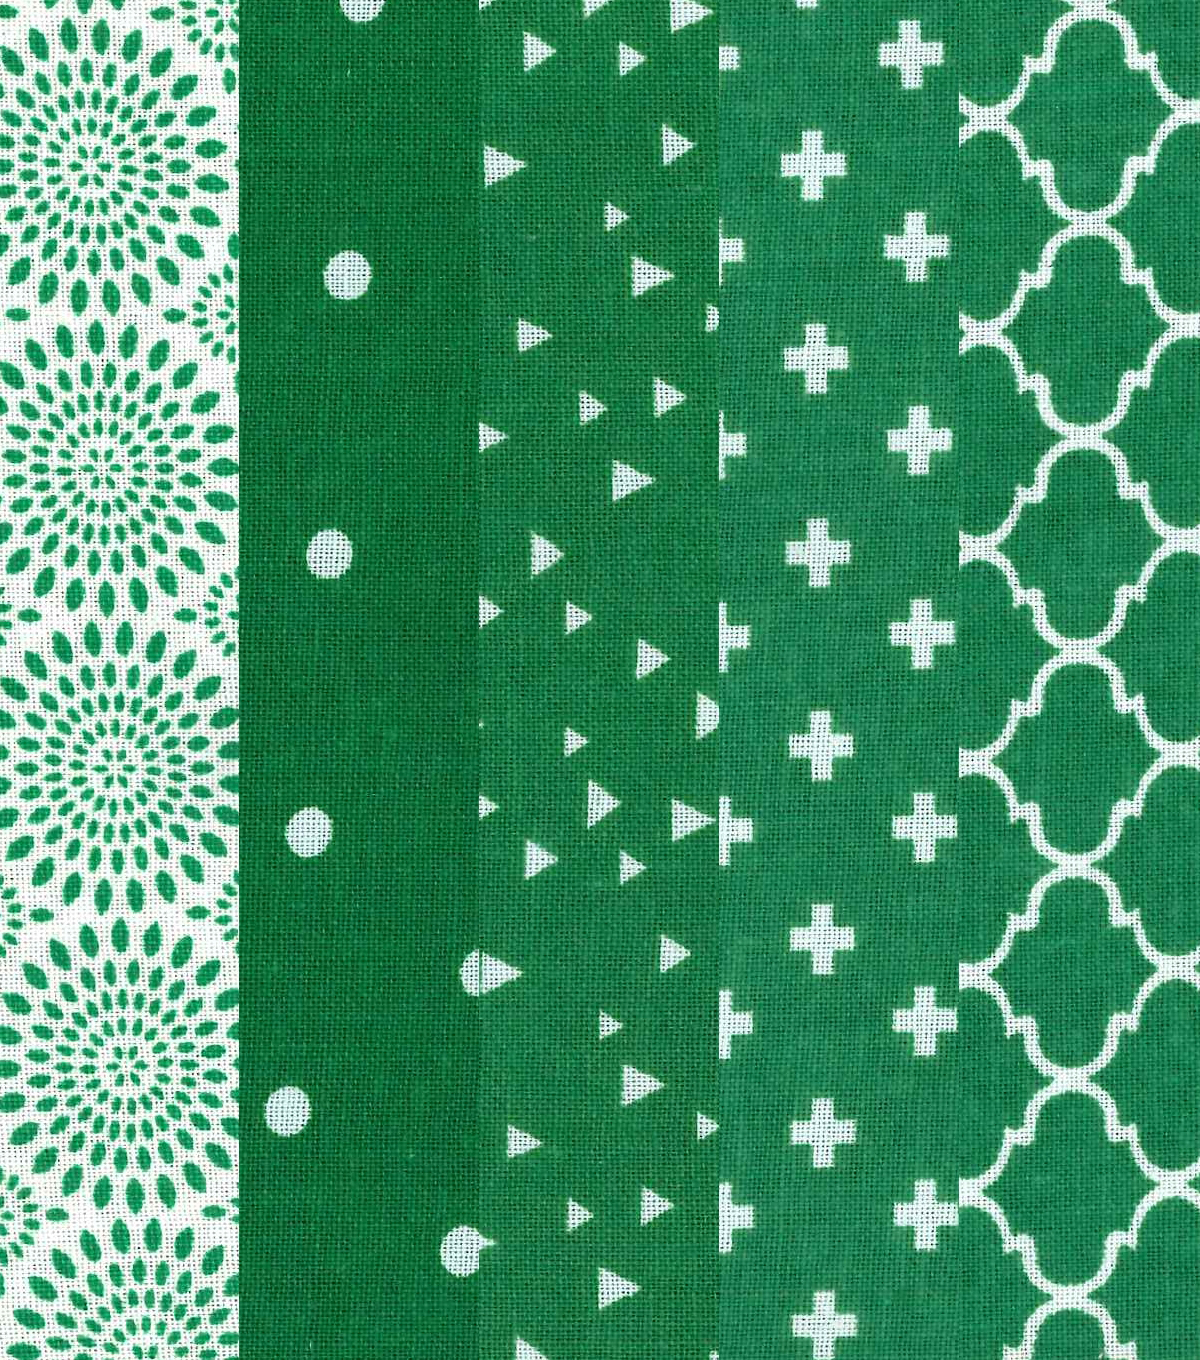 Jelly Roll Cotton Fabric 20 Strips 2.5\u0027\u0027-Assorted Green & White Patterns